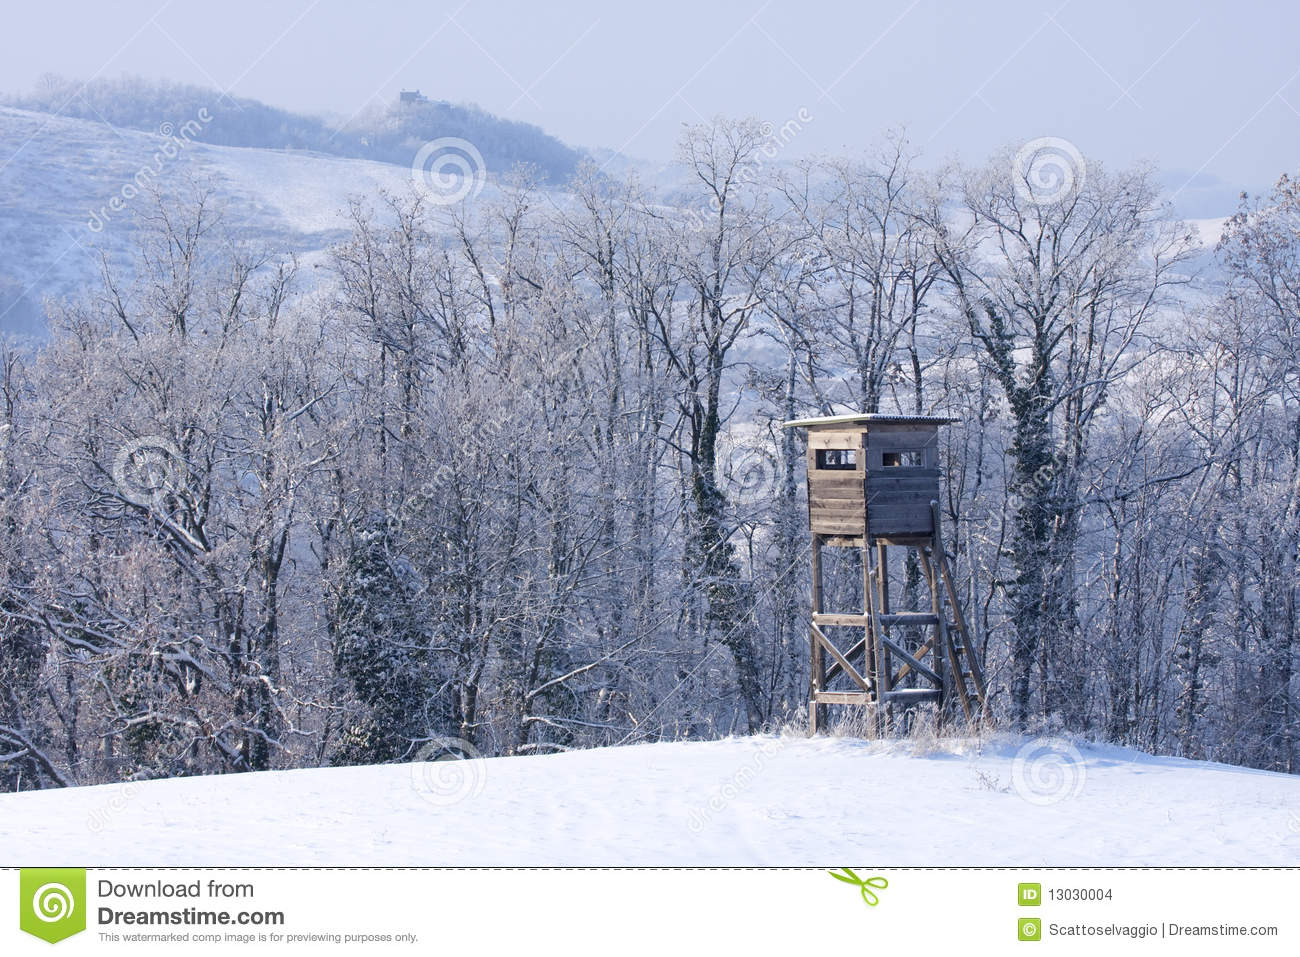 Hunting deer and wildboar tower